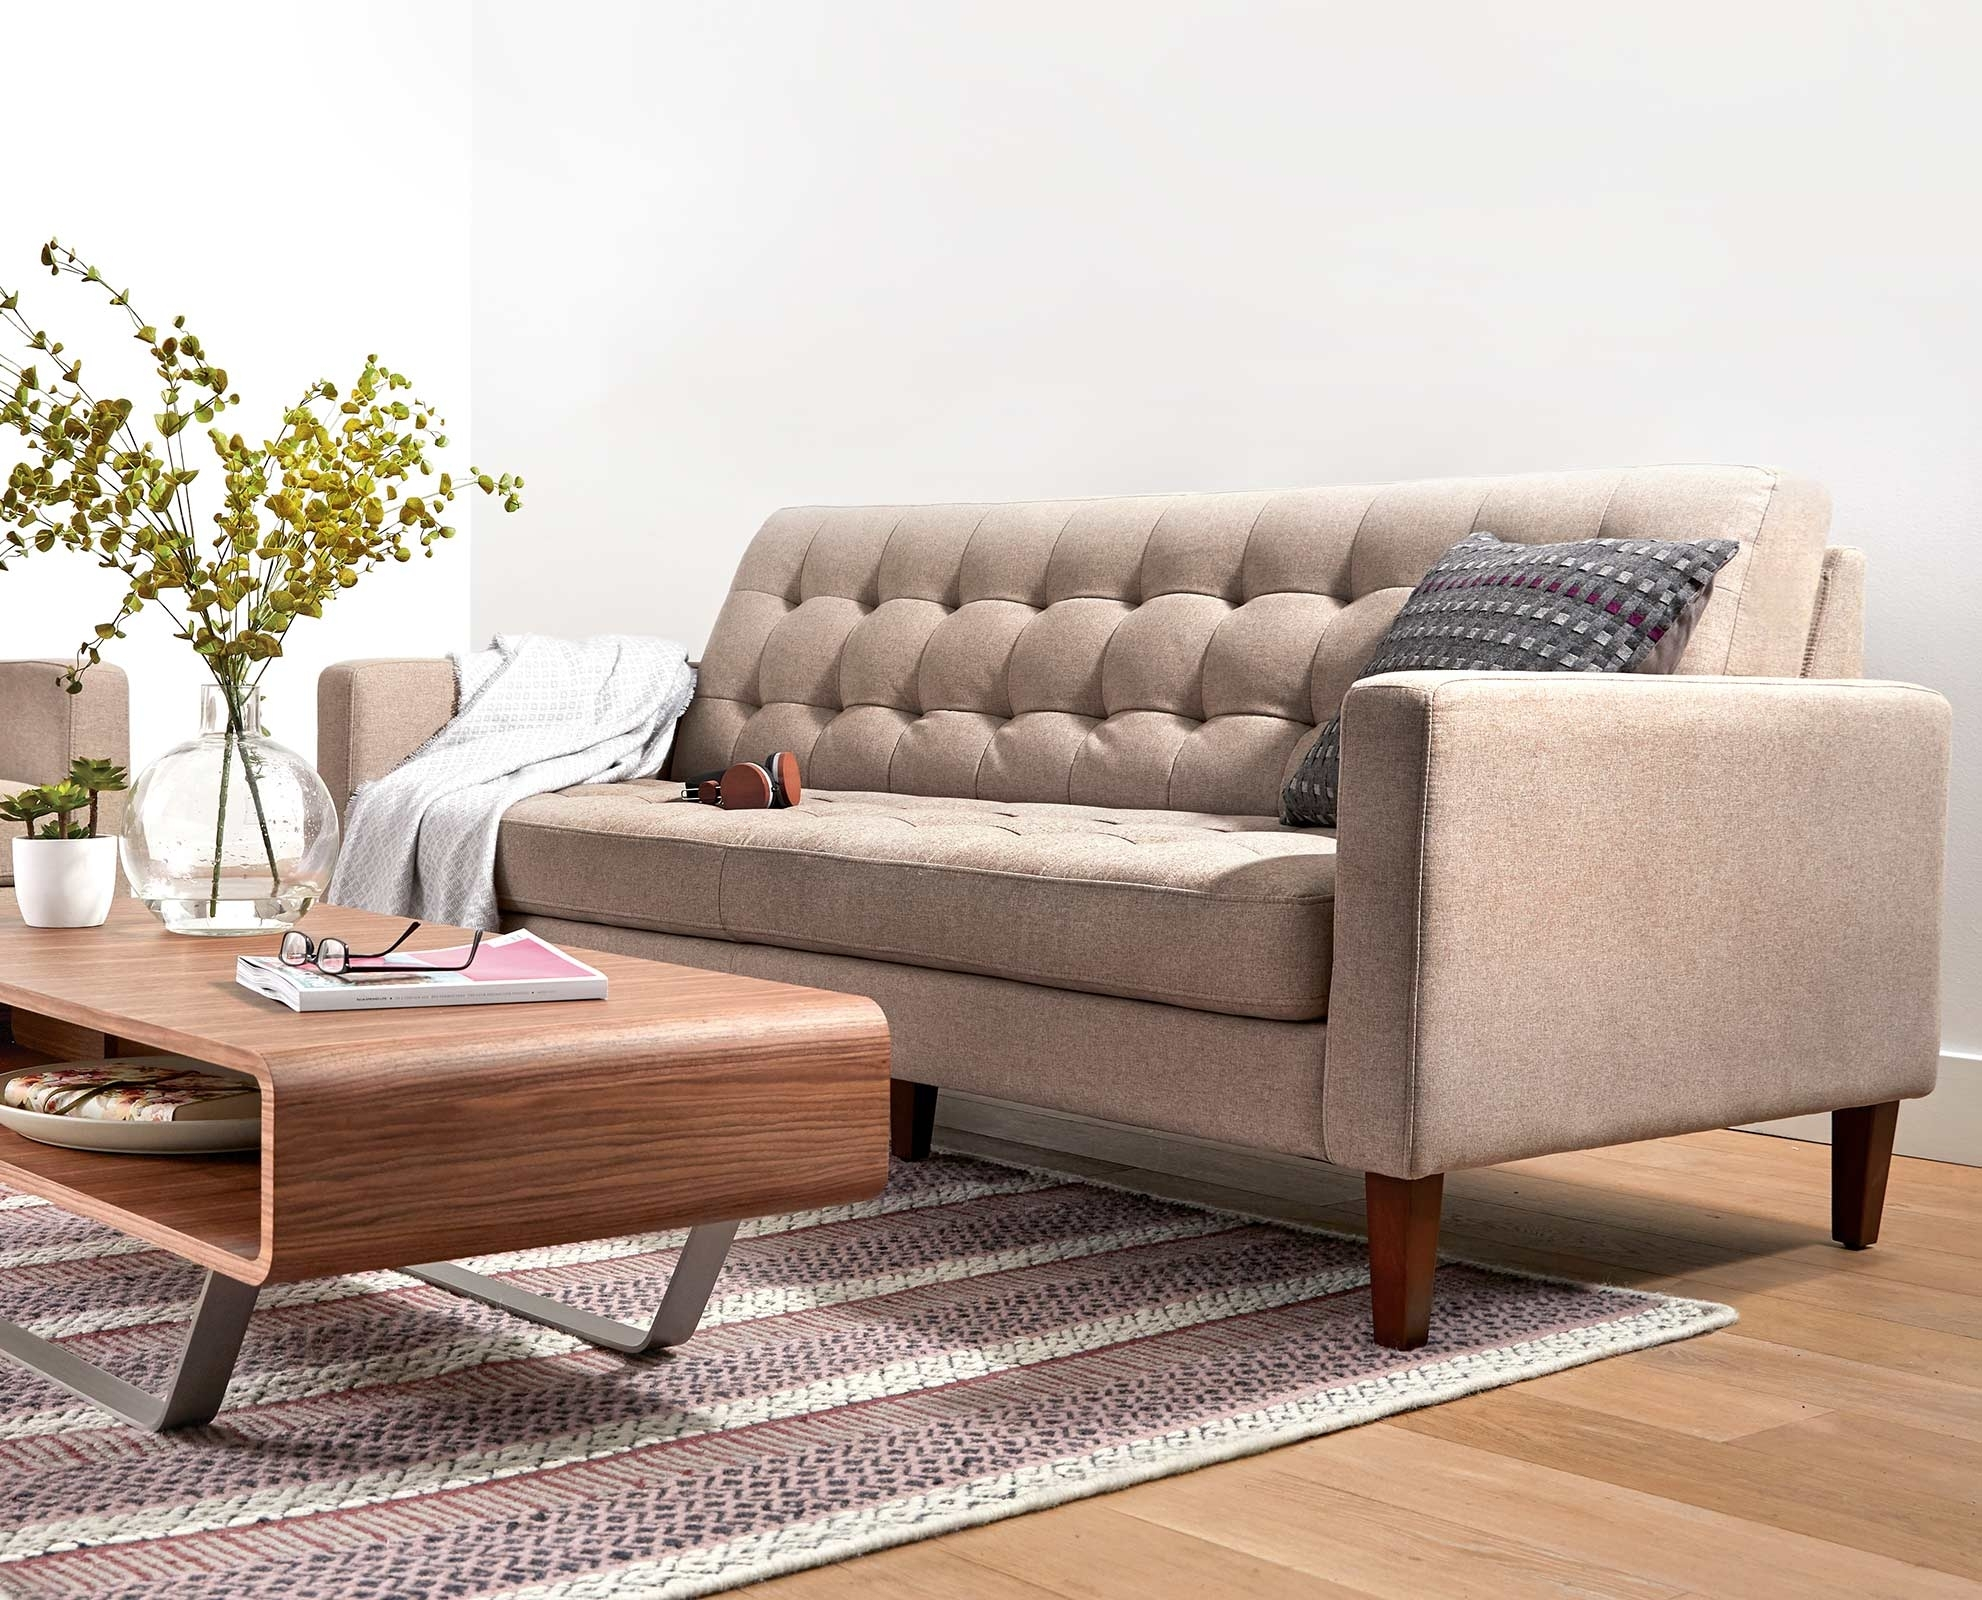 Laura Sofa From Dania Furniture | Living Room Furniture | Pinterest With Regard To Dania Sectional Sofas (View 10 of 10)